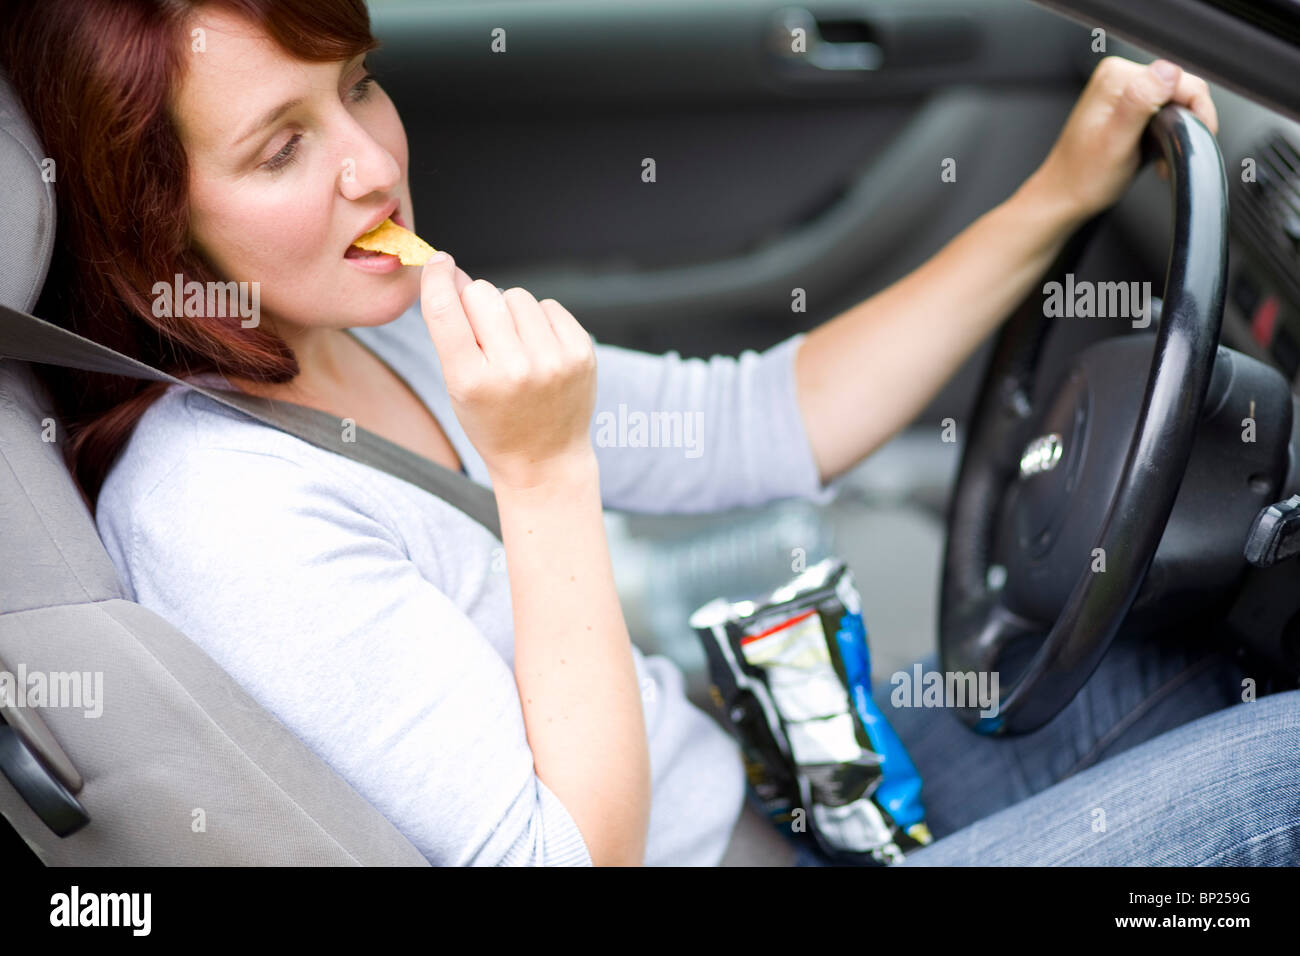 Woman snacking whilst driving - Stock Image